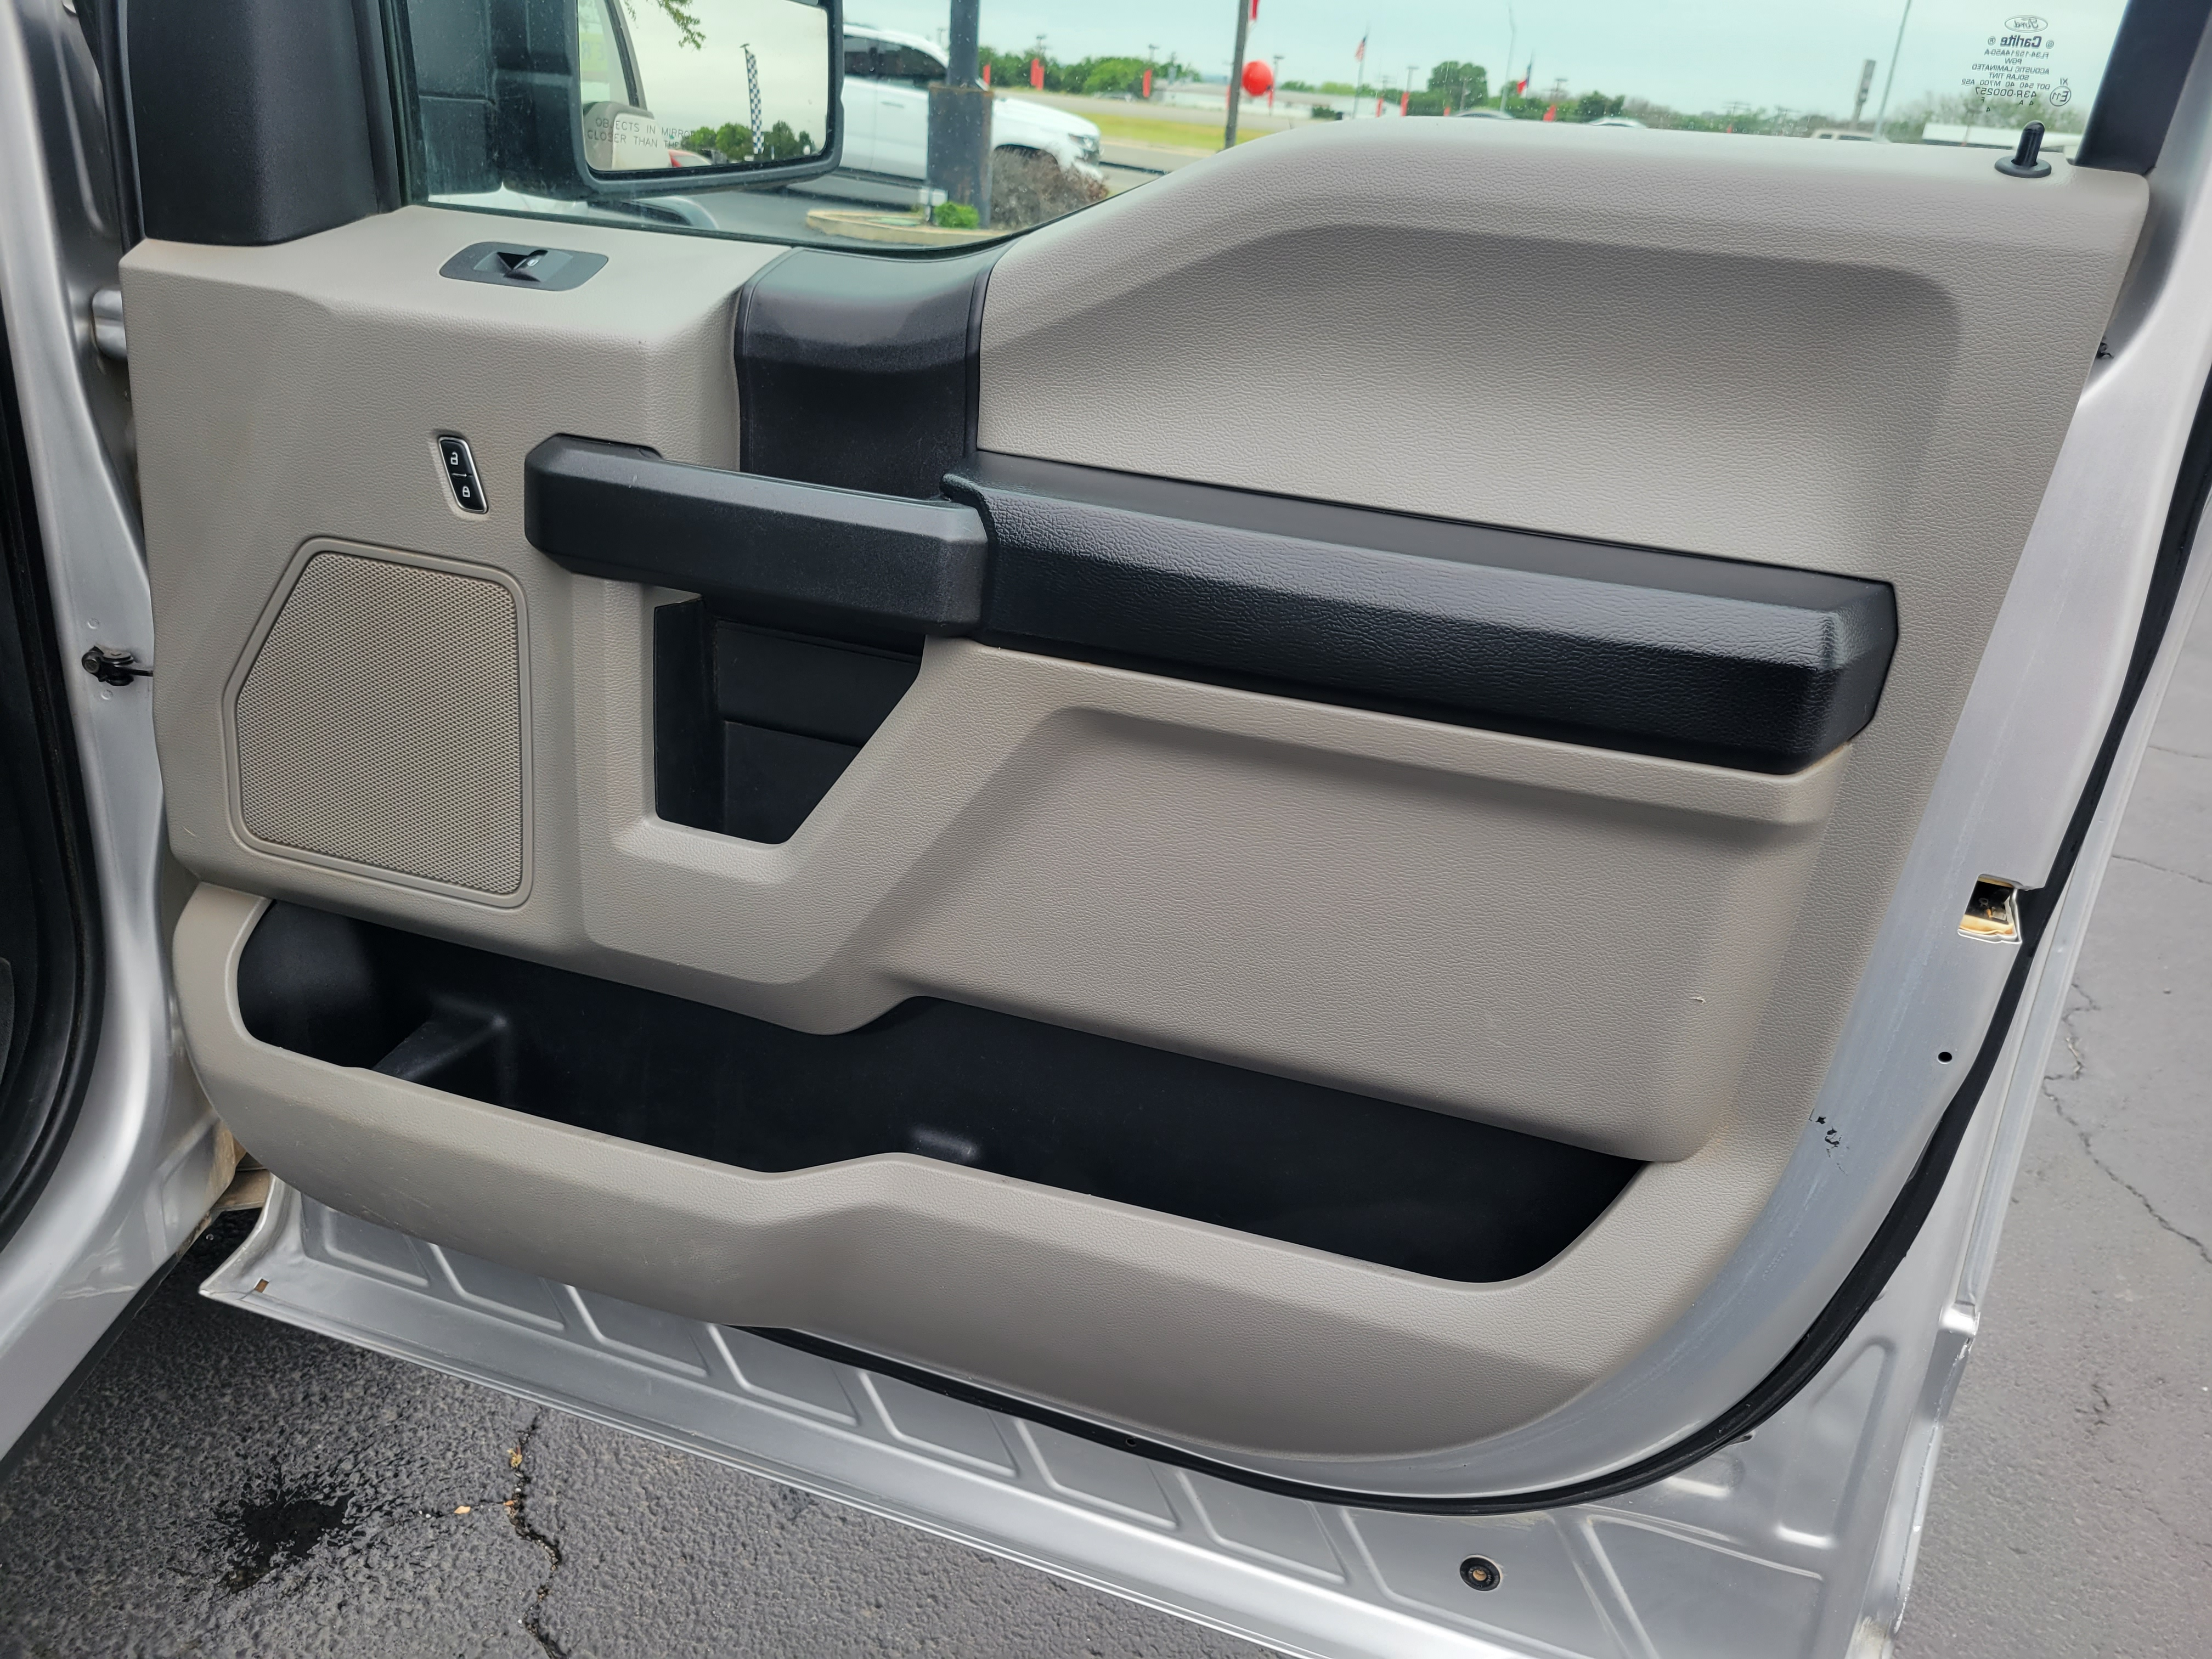 used vehicle - Truck FORD F-150 2015